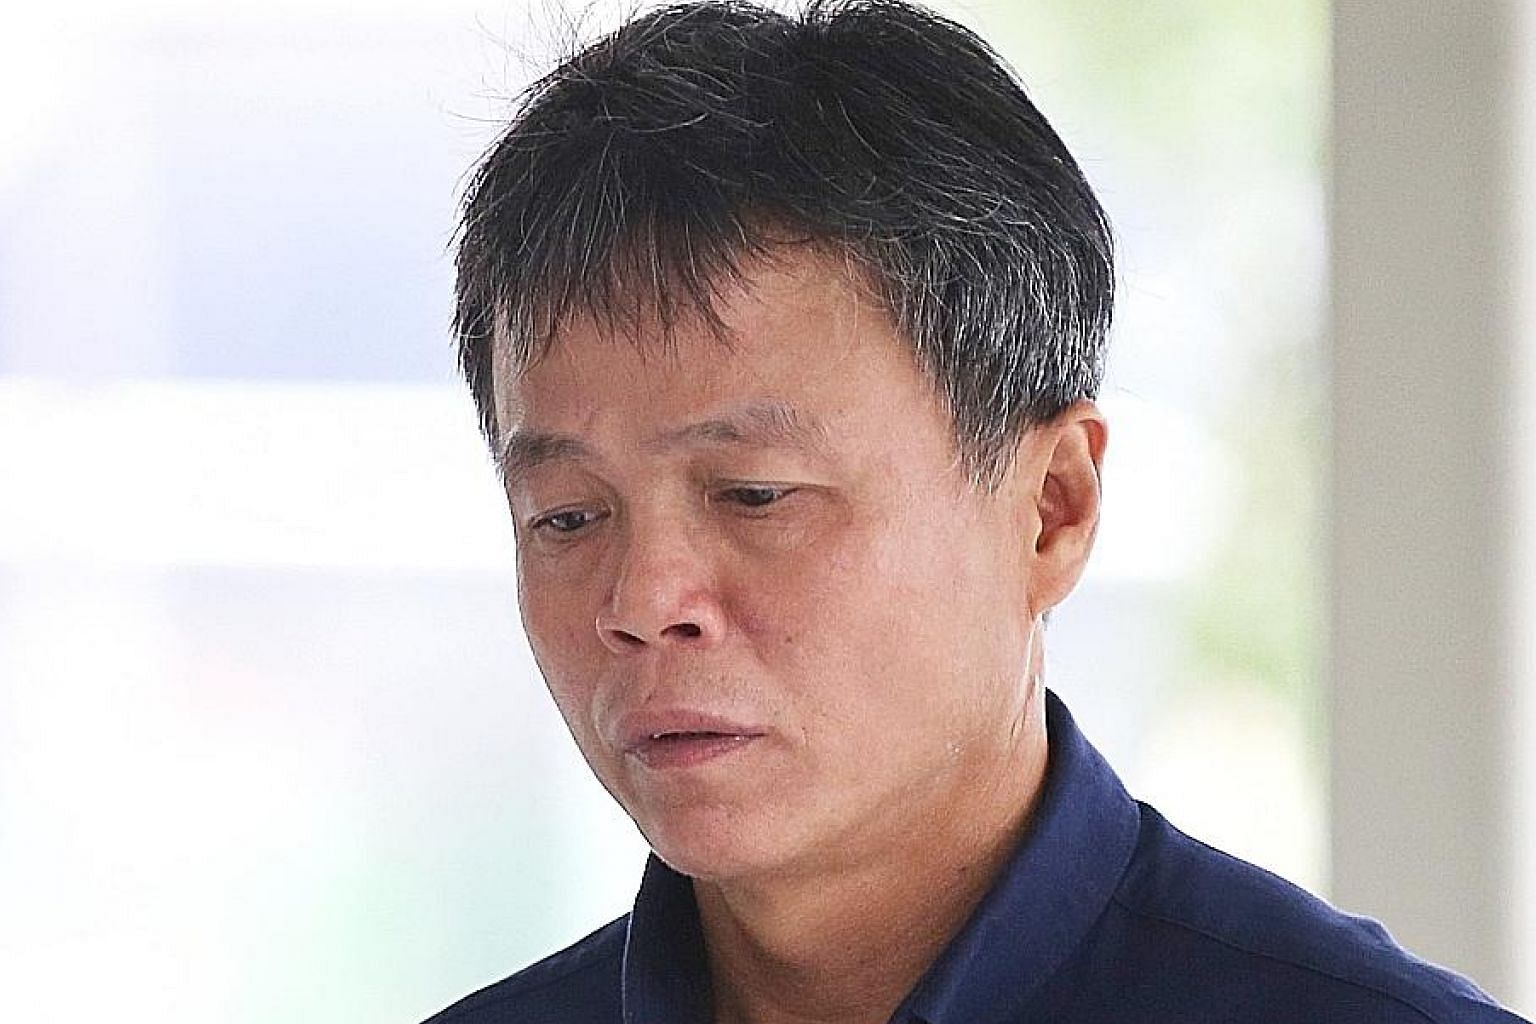 The convicted duo identified Ong Hock Chye (left) in the dock yesterday, but not businessman Lim Hong Liang (below). Both Lim and Ong are accused of being involved in a conspiracy to cause hurt to a waiter who was the businessman's love rival.